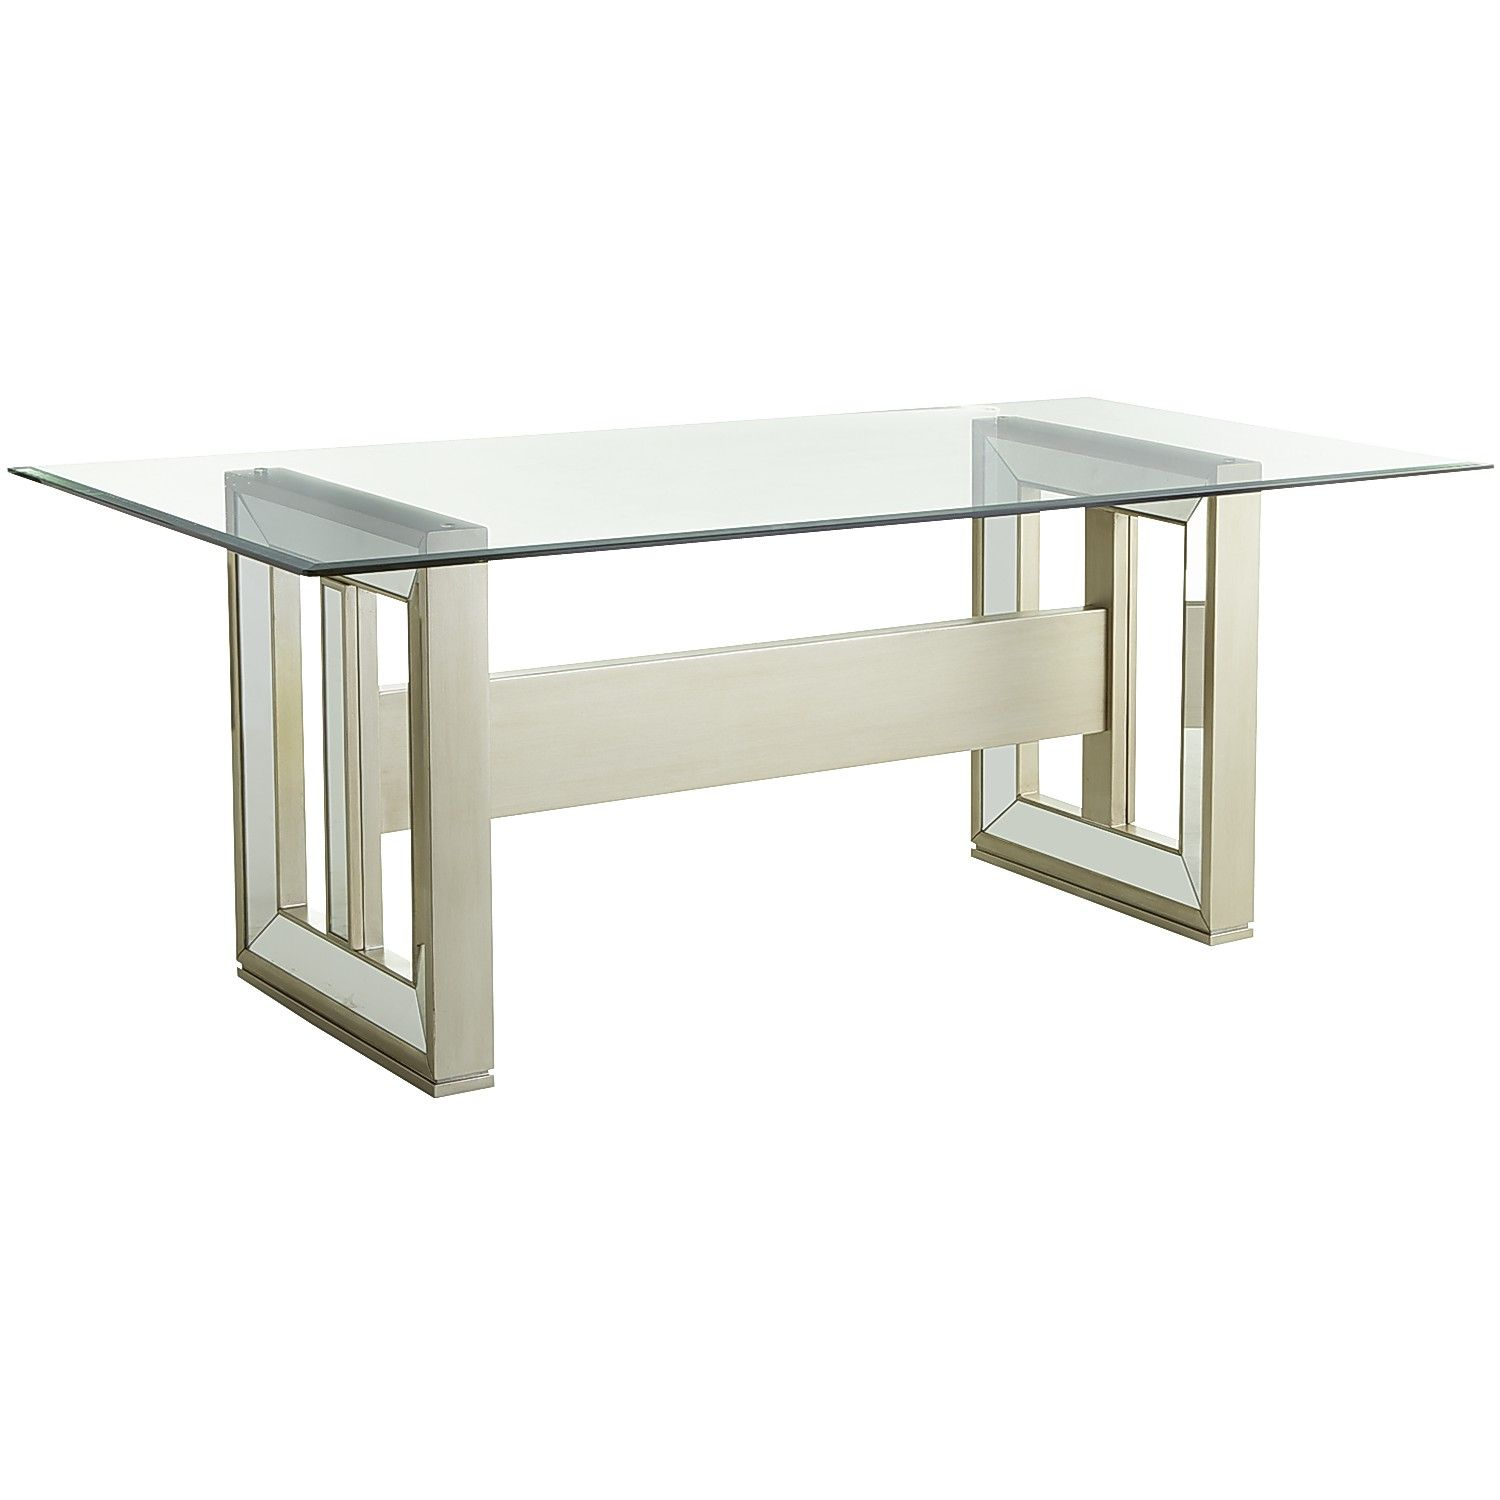 Champagne Alexa Rectangular Mirrored Dining Table Base  : e542b0b1d7bafbbe480e27b3f73985bd from www.pinterest.com size 1500 x 1500 jpeg 111kB